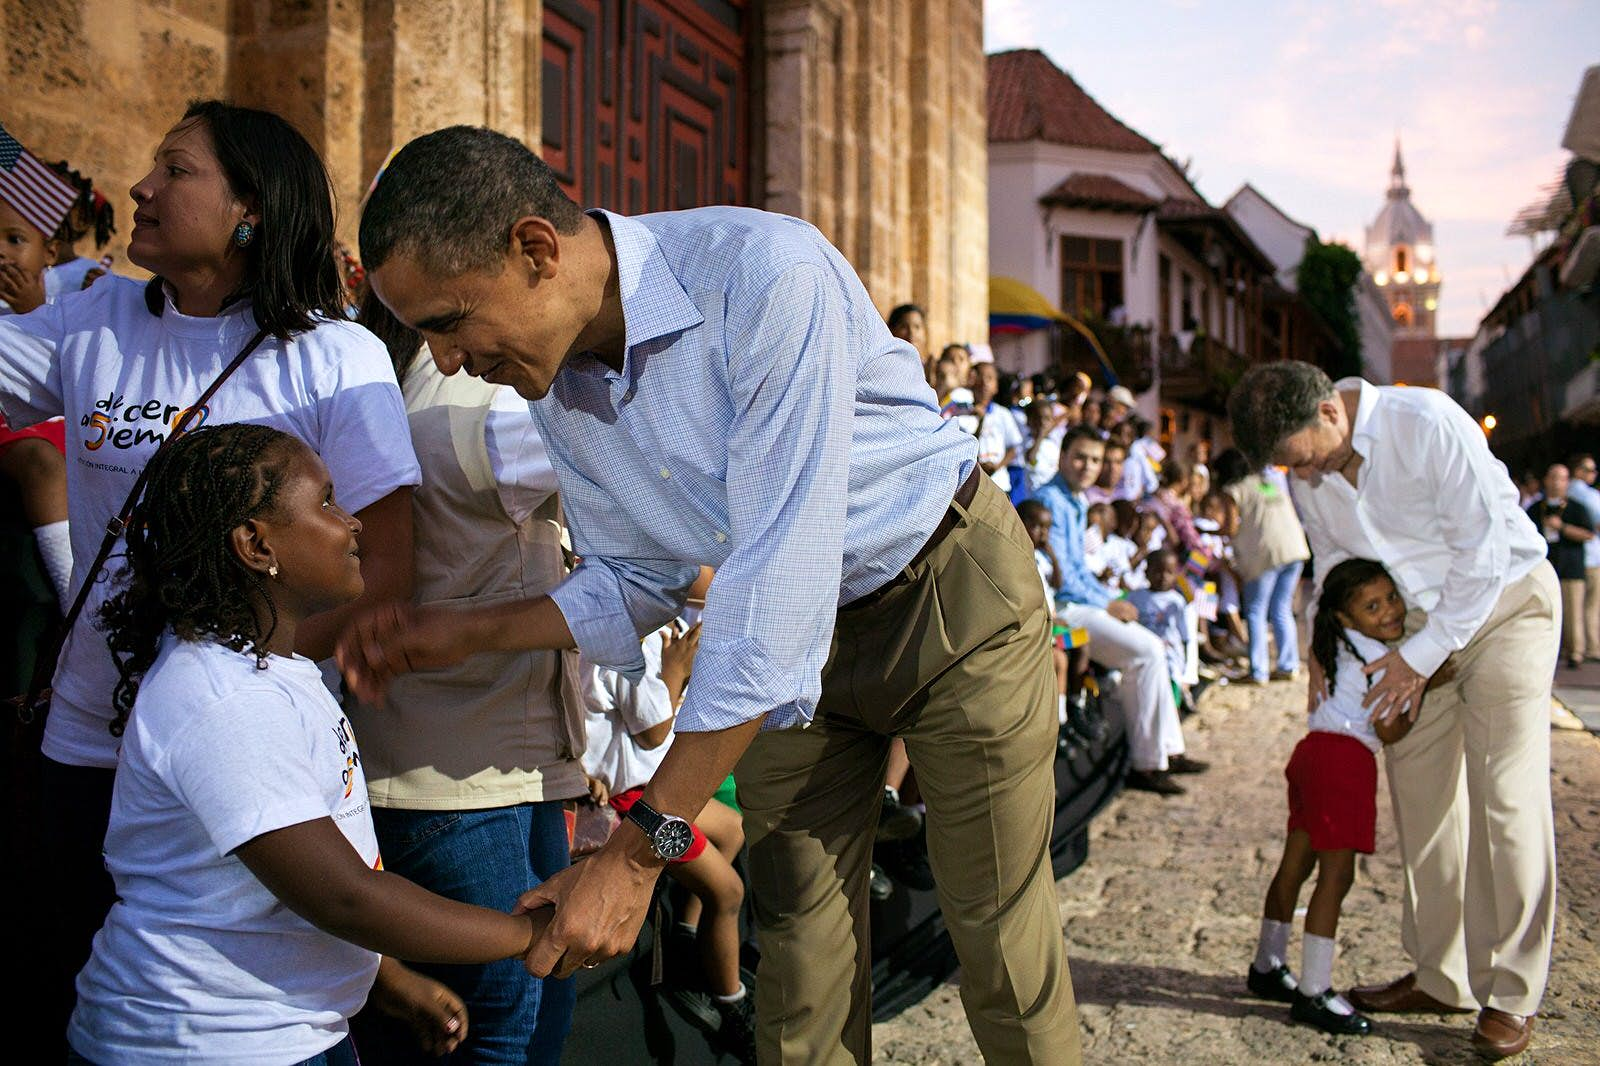 President Obama greeting a young girl at the Plaza de San Pedro, Cartagena, Colombia, during the Summit of the Americas, April 15, 2012©Pete Souza /Official White House Photo